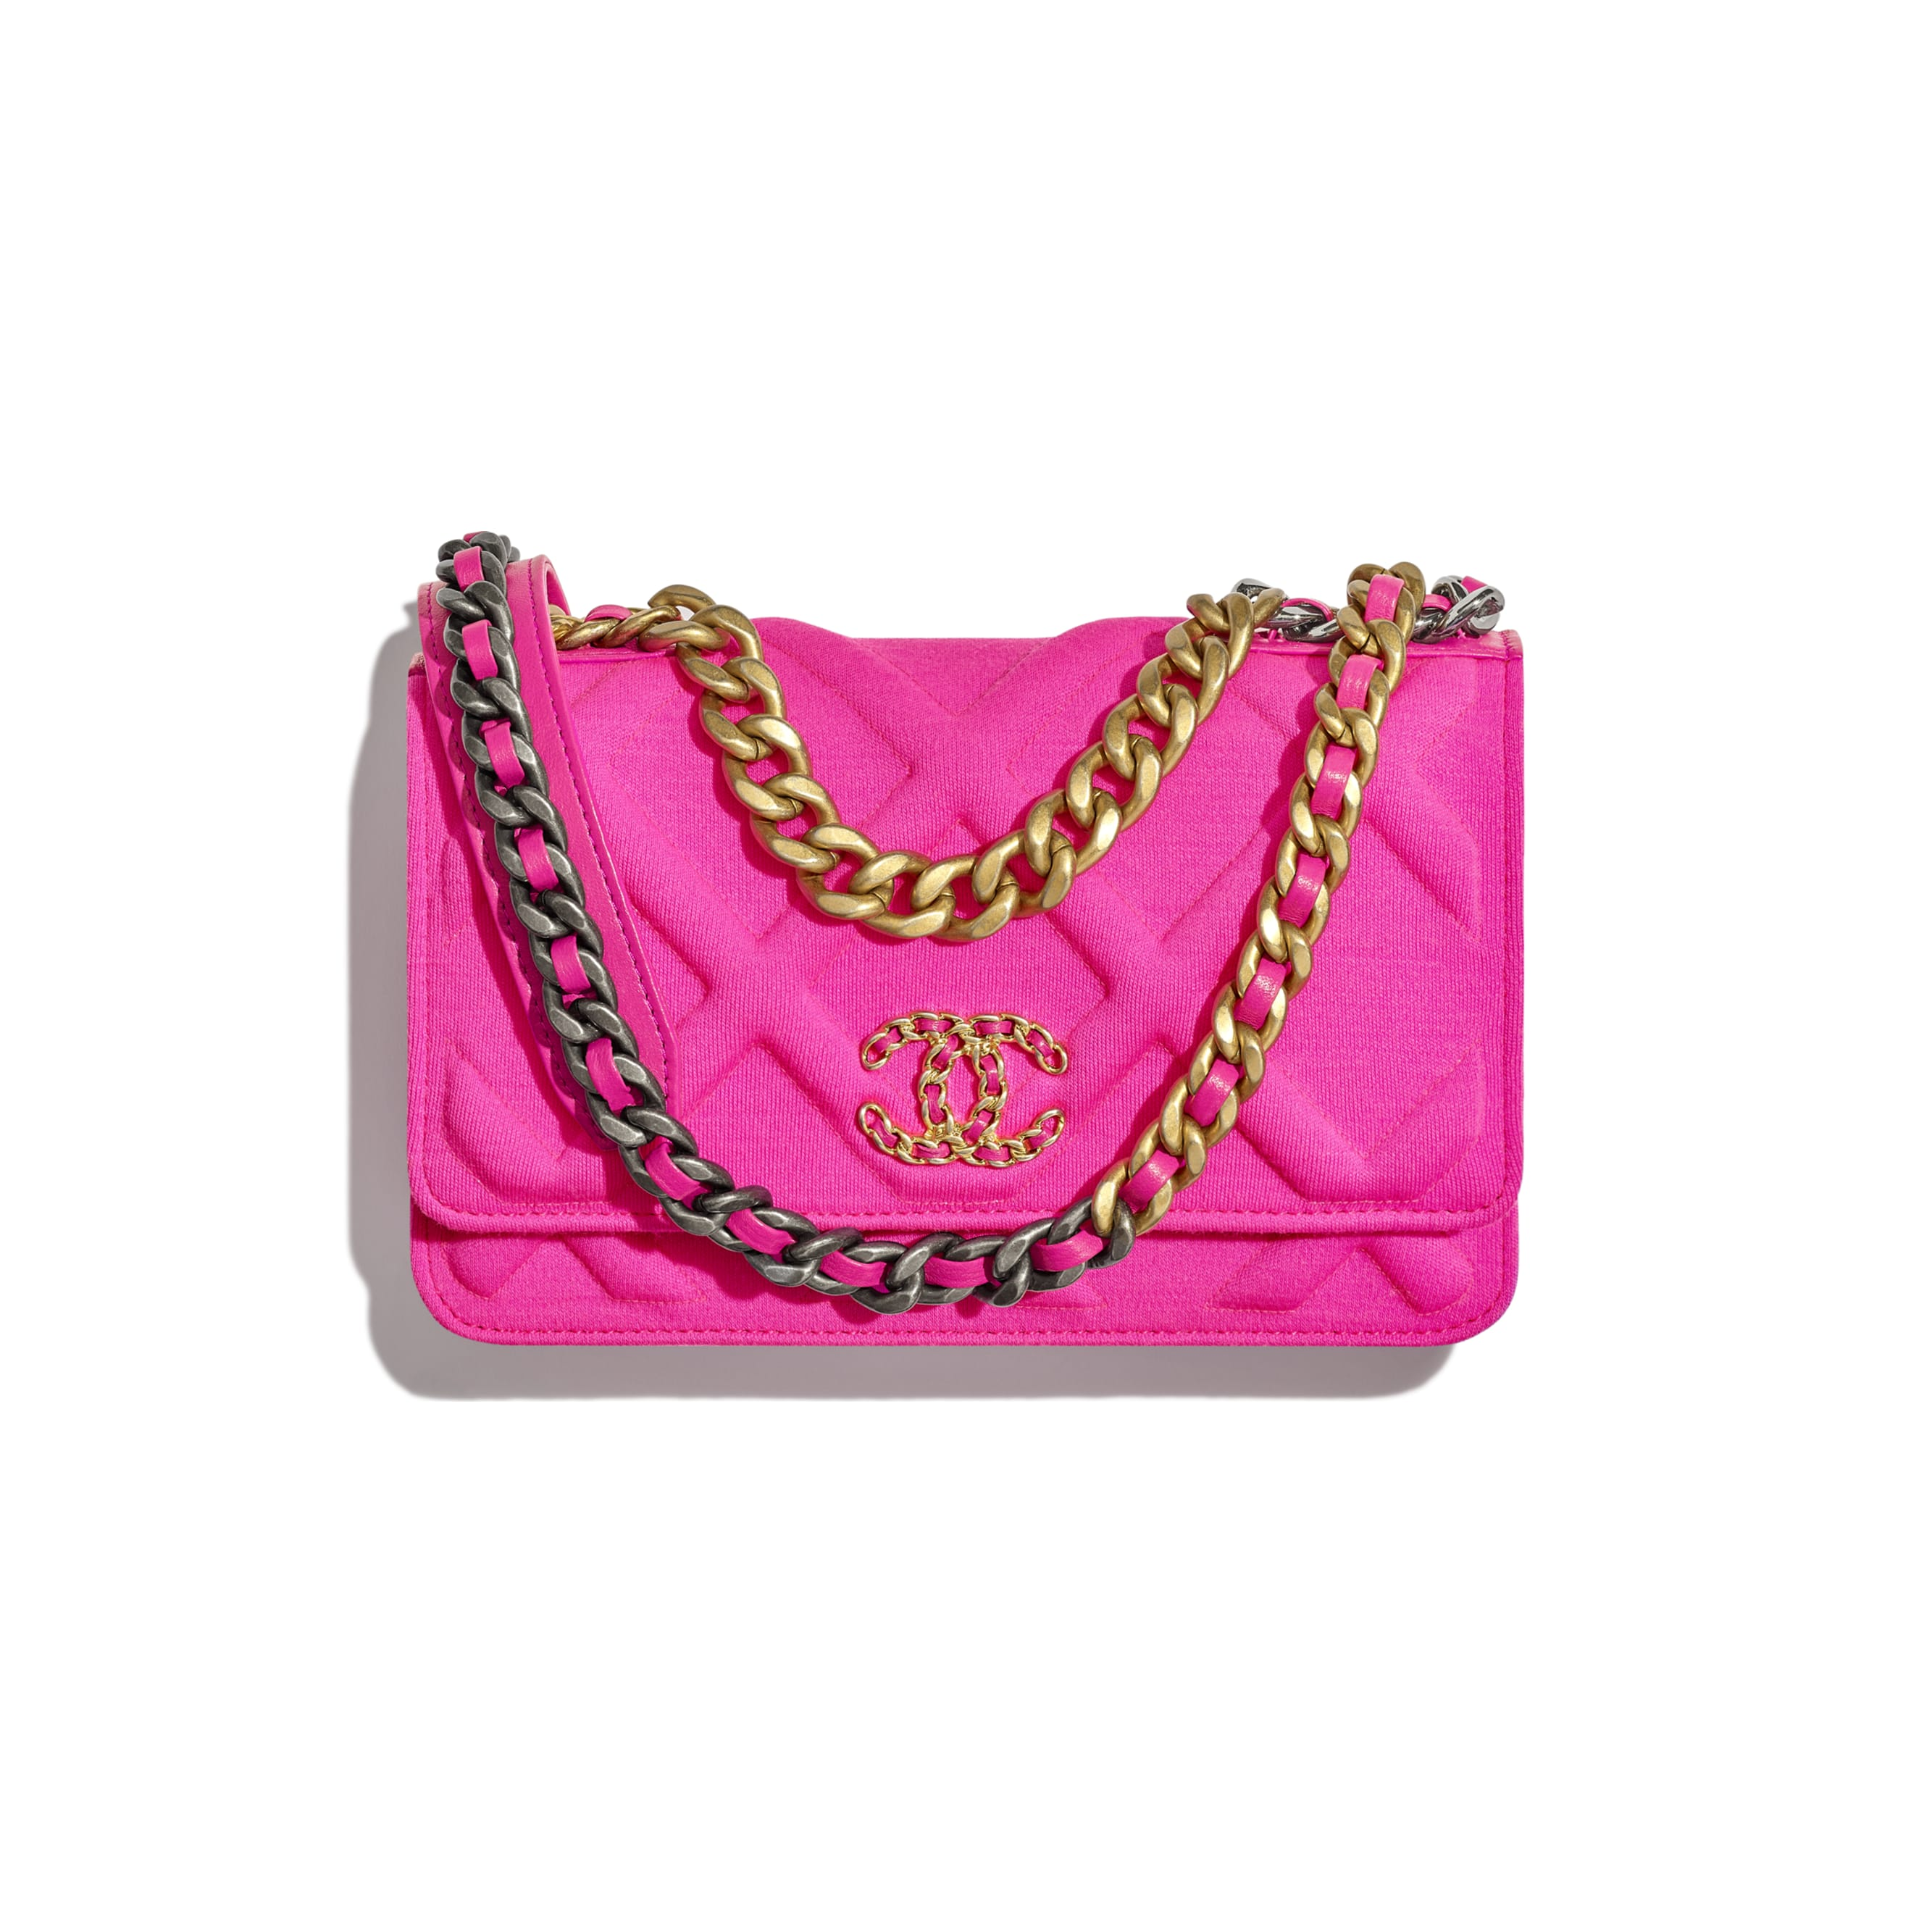 CHANEL 19 Wallet on Chain - Fuchsia - Jersey, Gold-Tone, Silver-Tone & Ruthenium-Finish Metal - Default view - see standard sized version